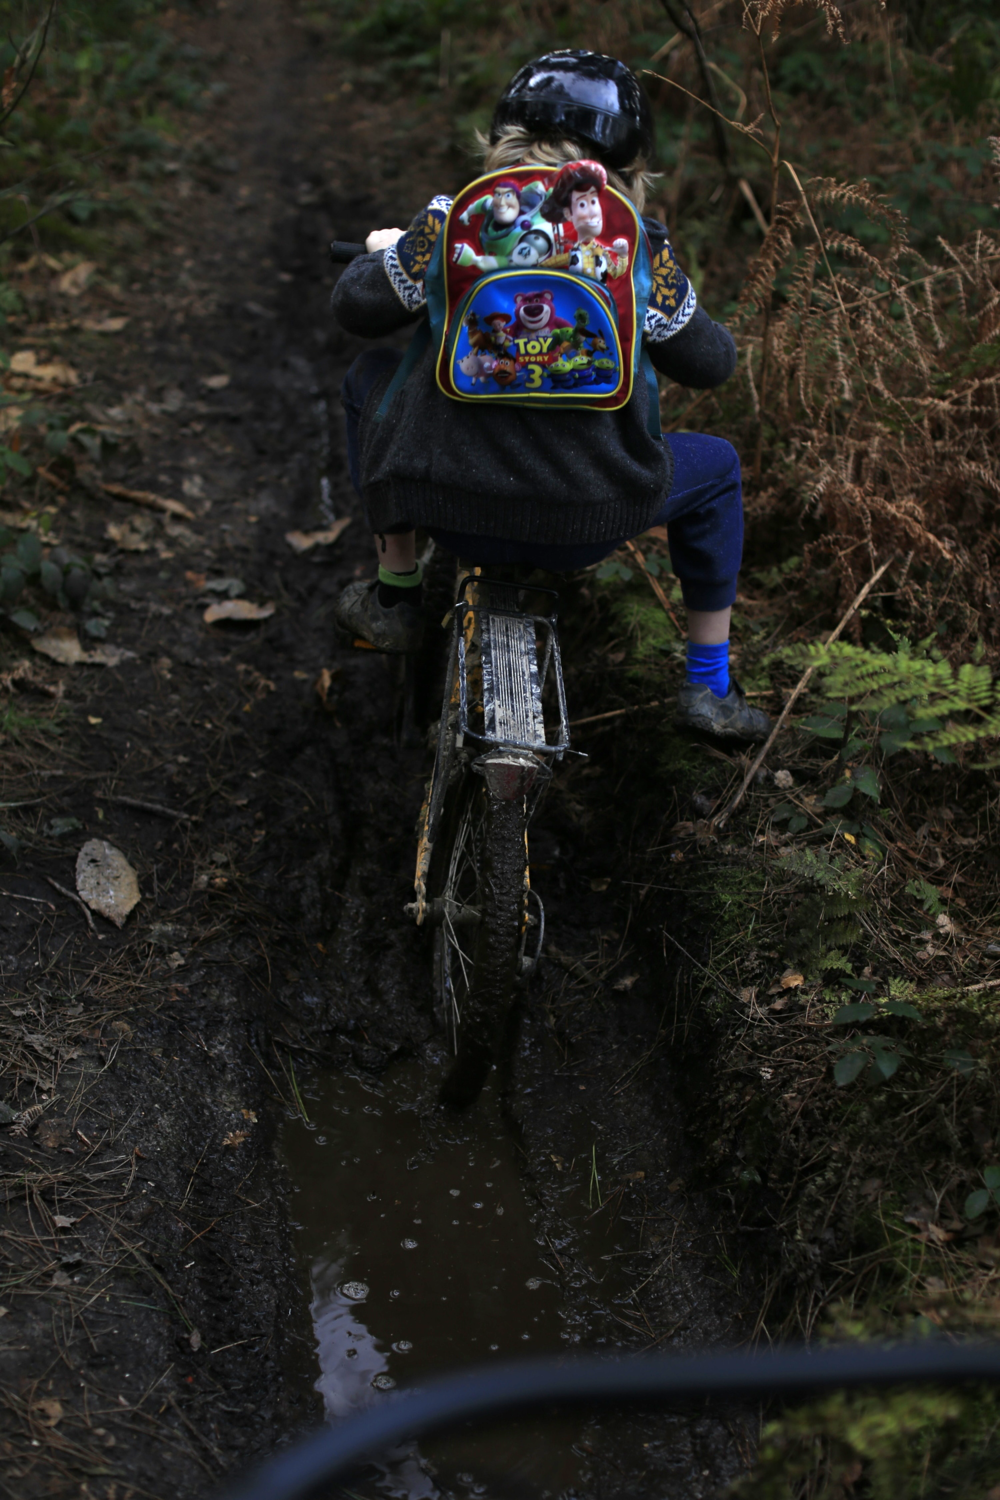 singletrack, off road, mtb, mountain biking, photo, cycle gear, maxxis